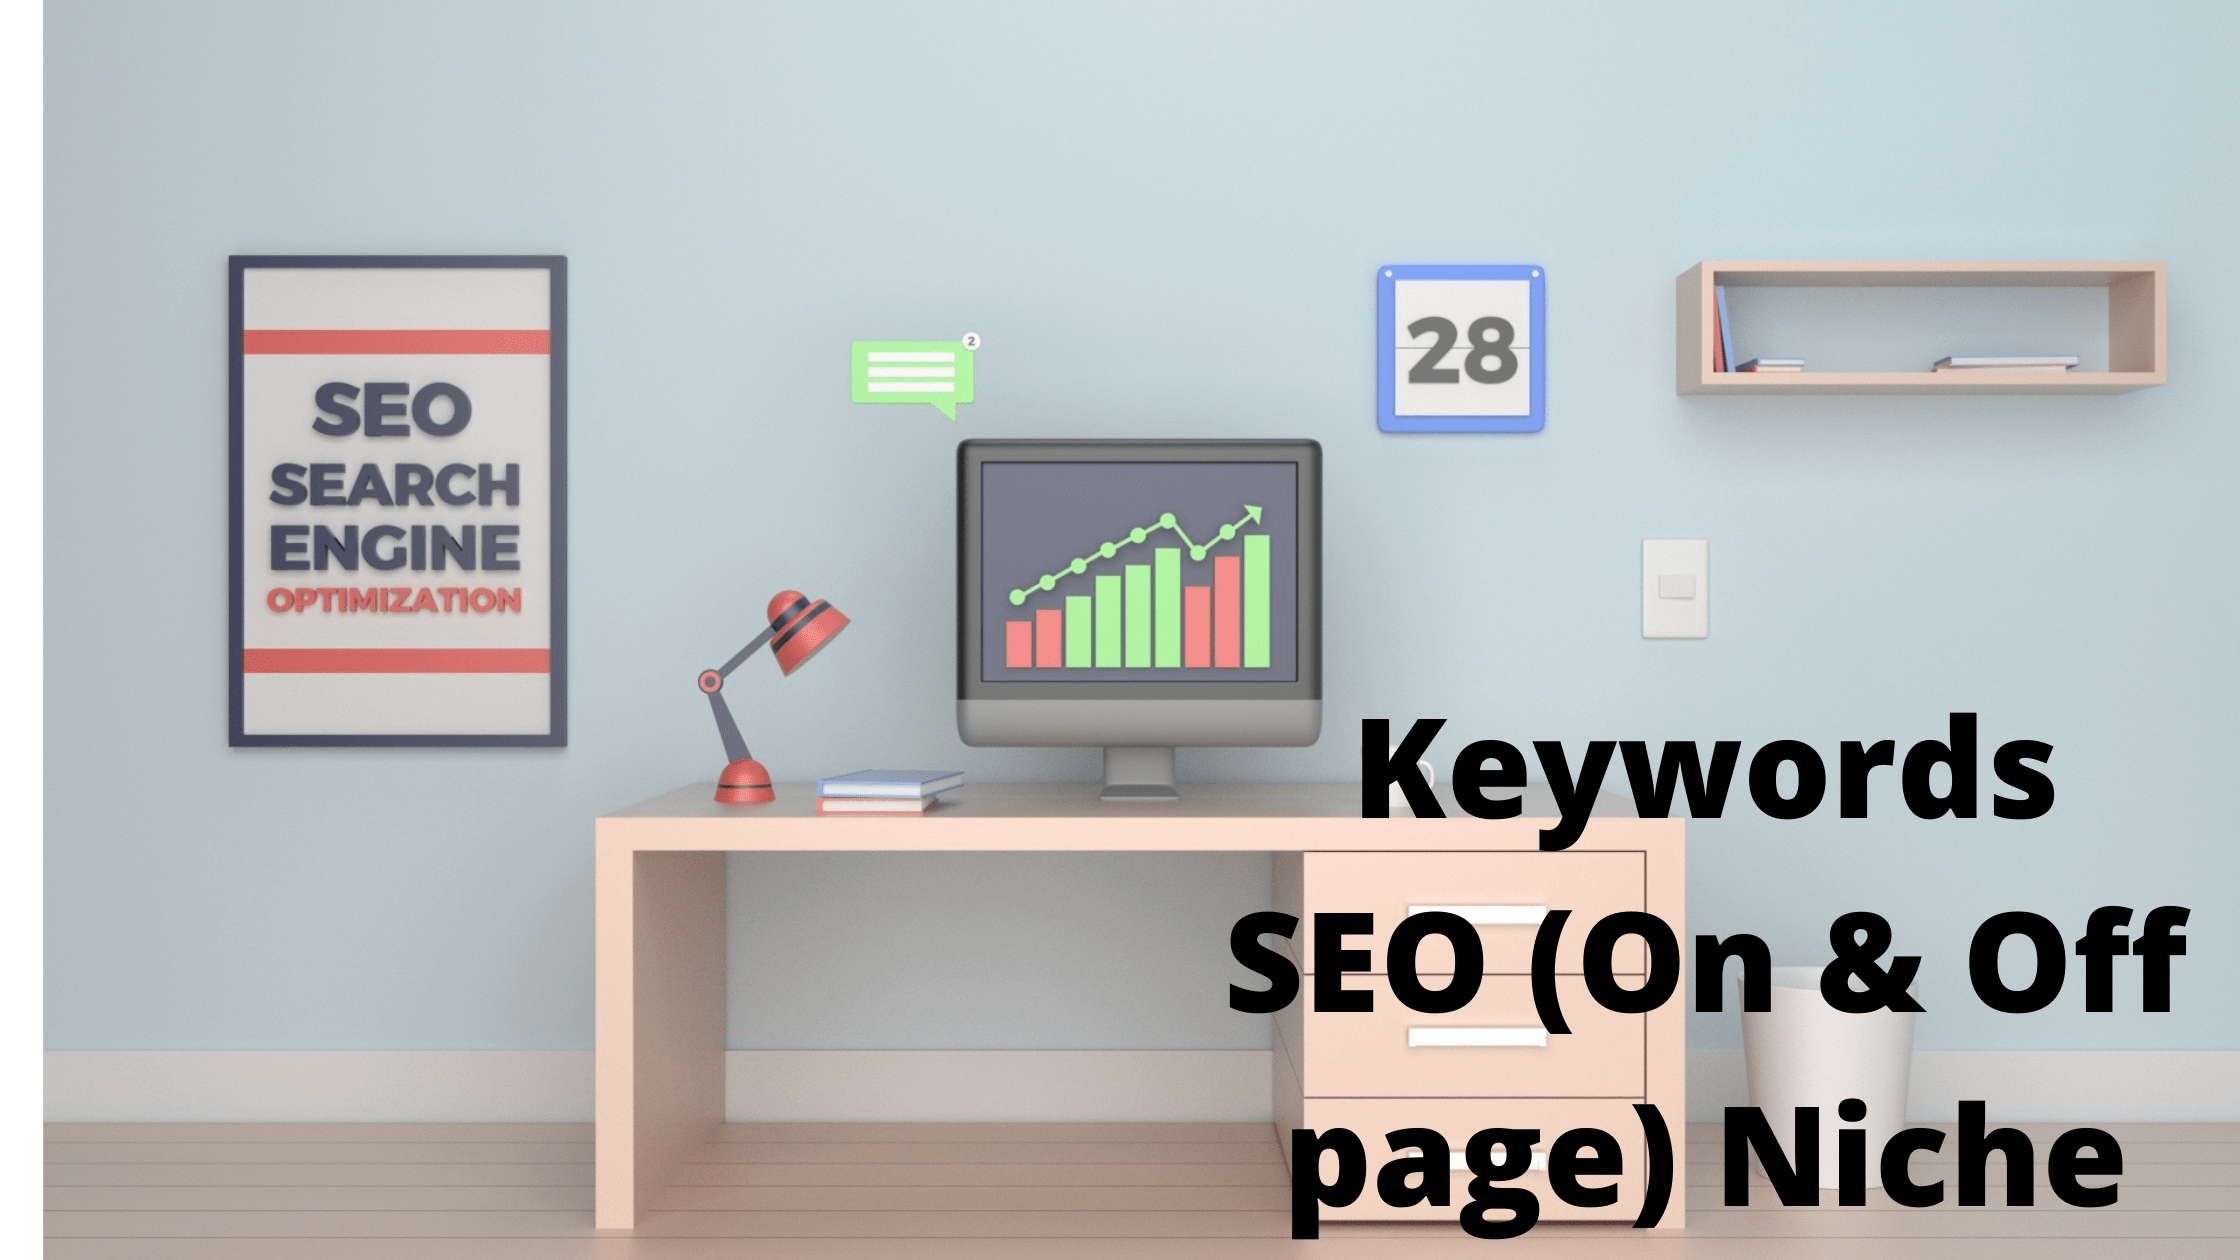 Keywords SEO (On & Off-page) Niche